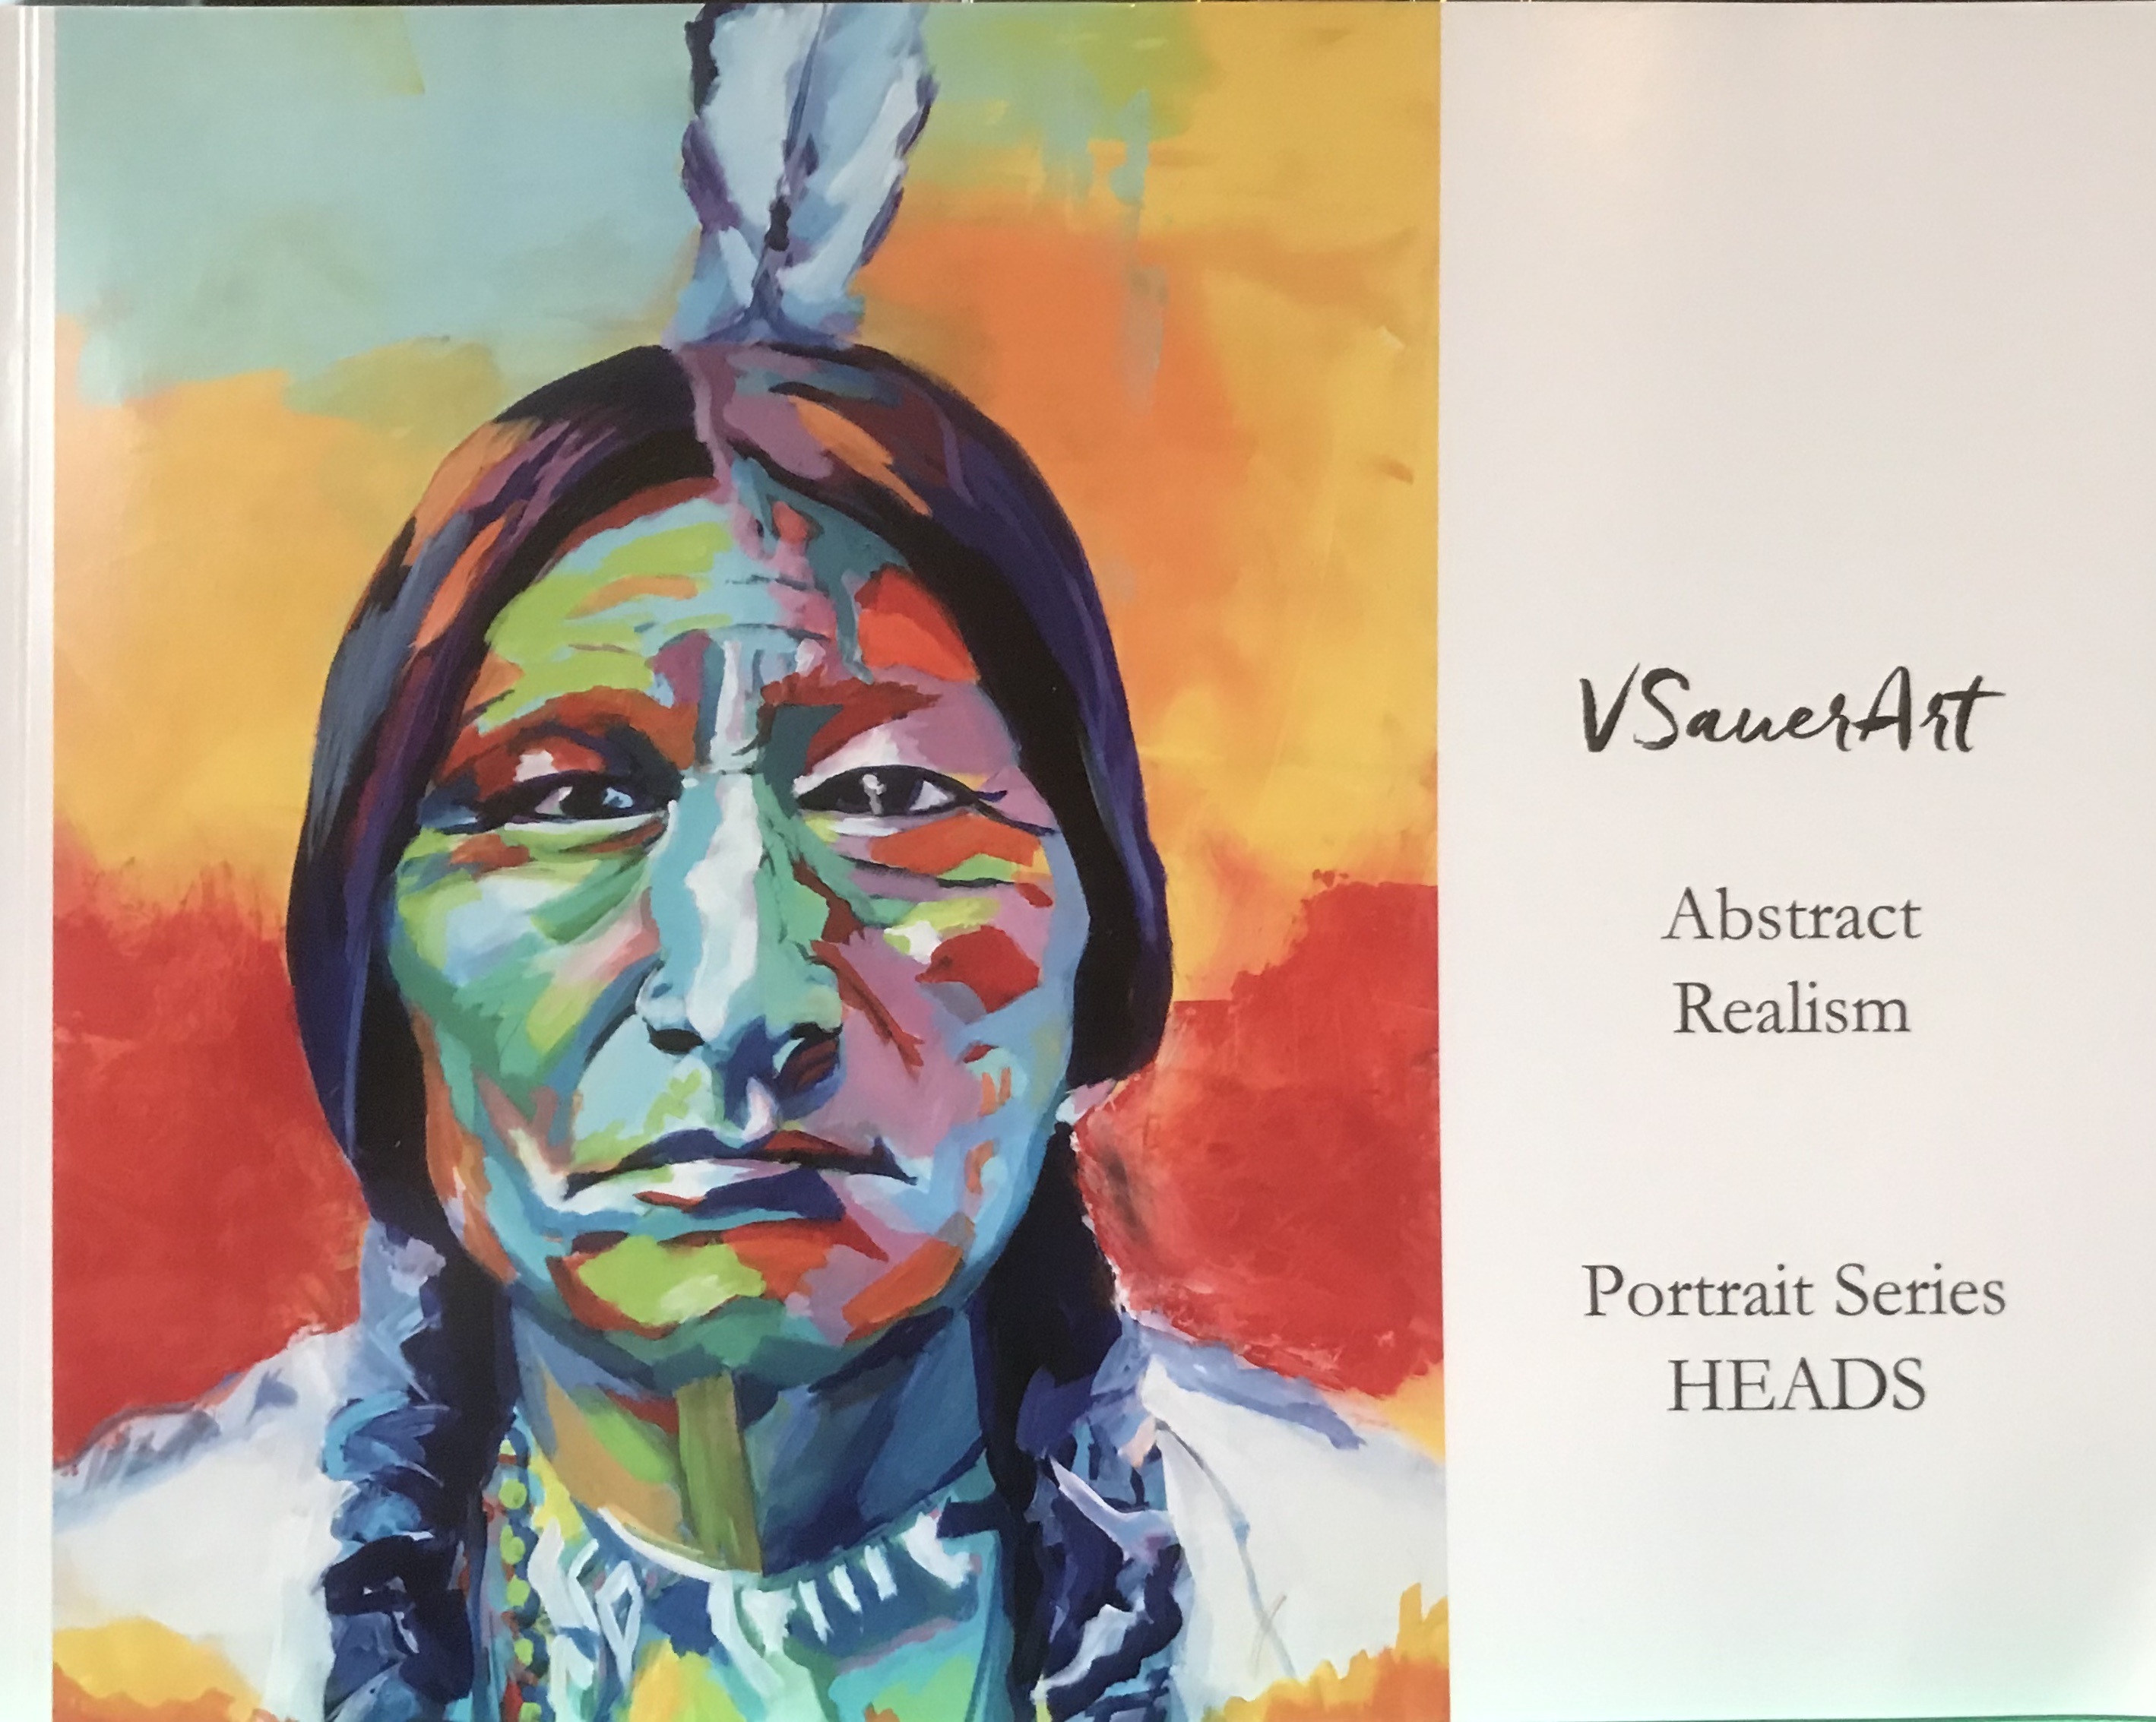 VSauer Art Abstract Realism Portrait Series Book